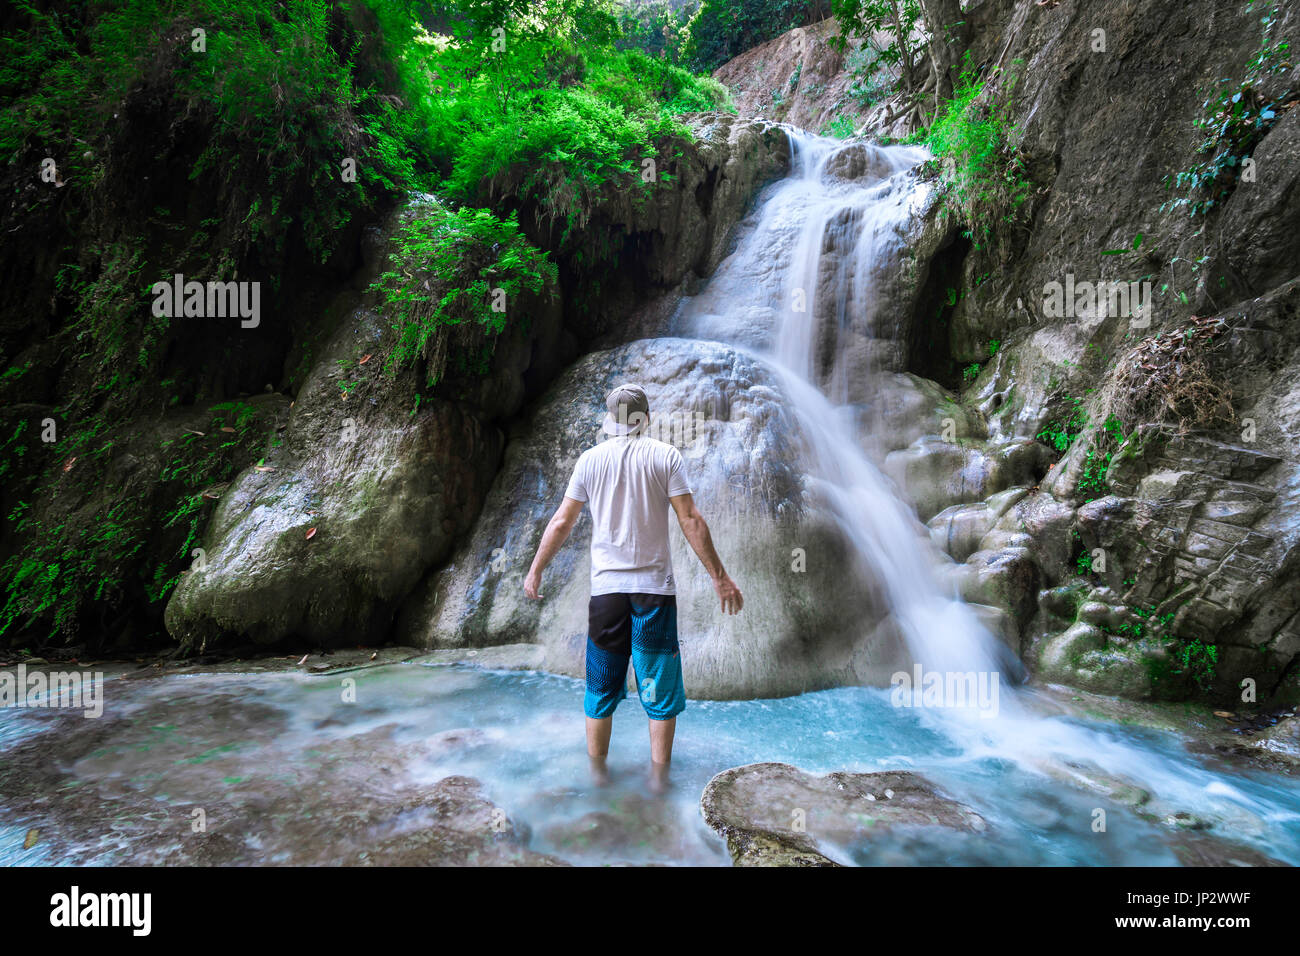 Man Solo traveler standing in front of  a waterfall in the jungle. - Stock Image